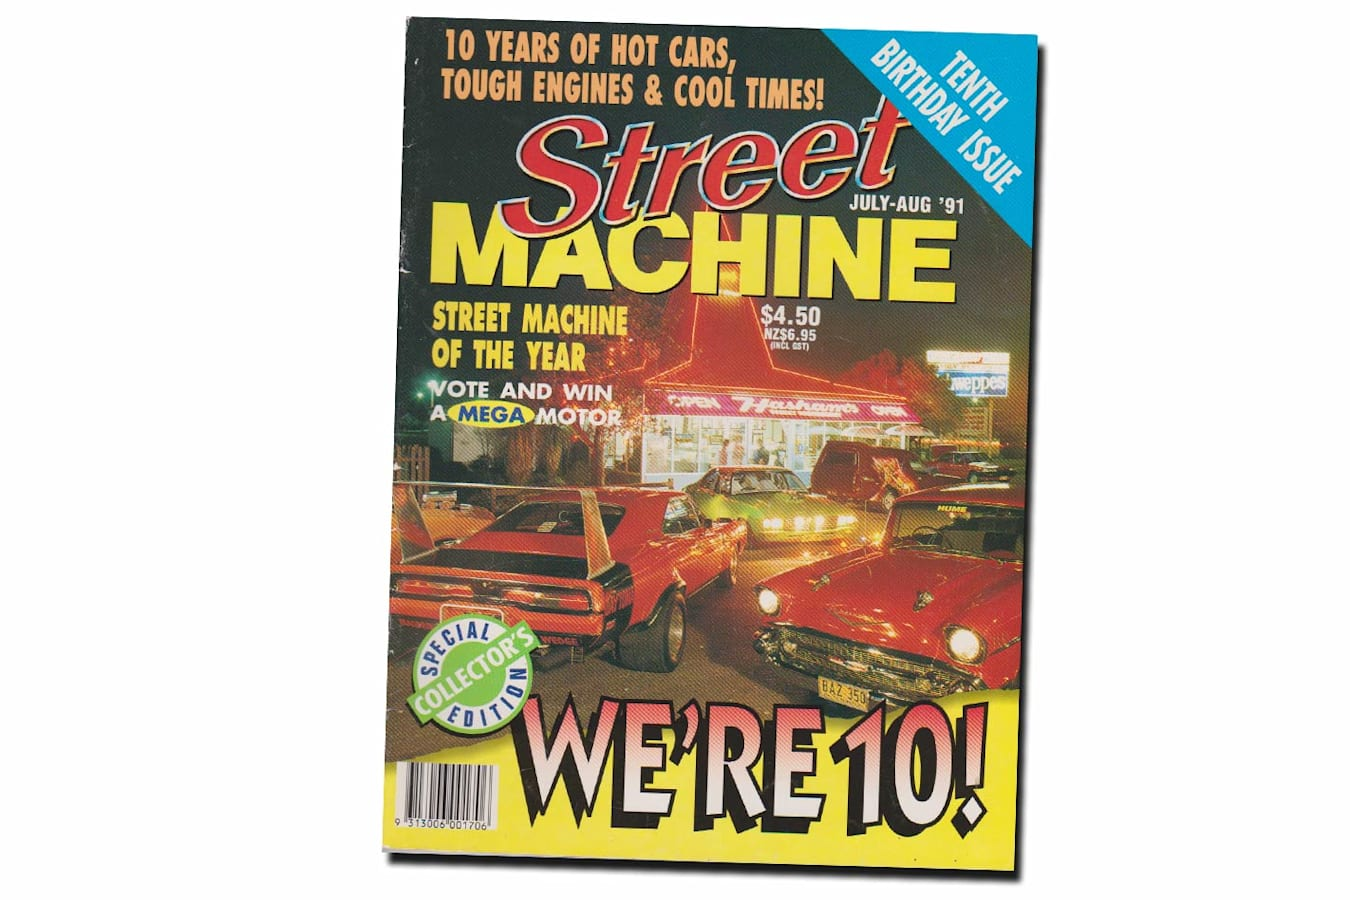 July August 1991 Street Machine cover